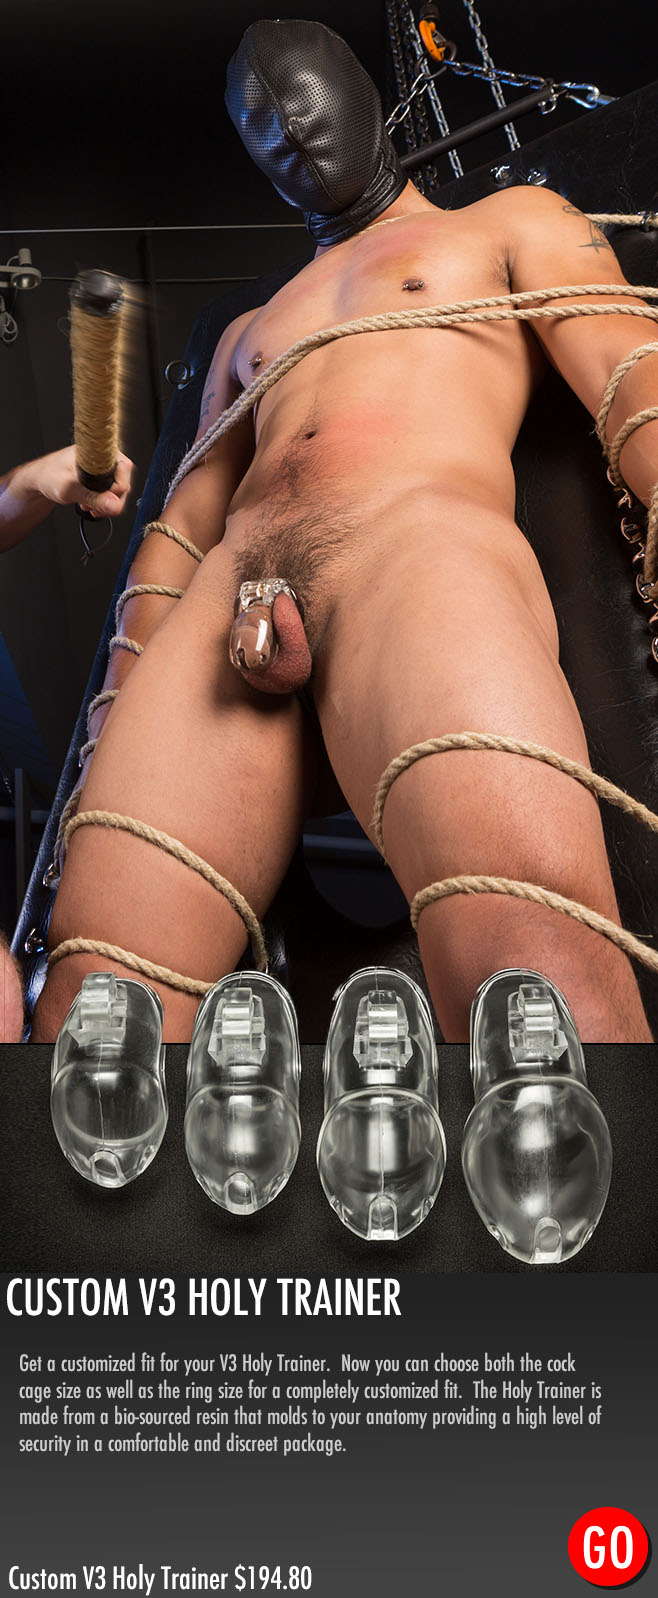 male chastity devices in custom sizes